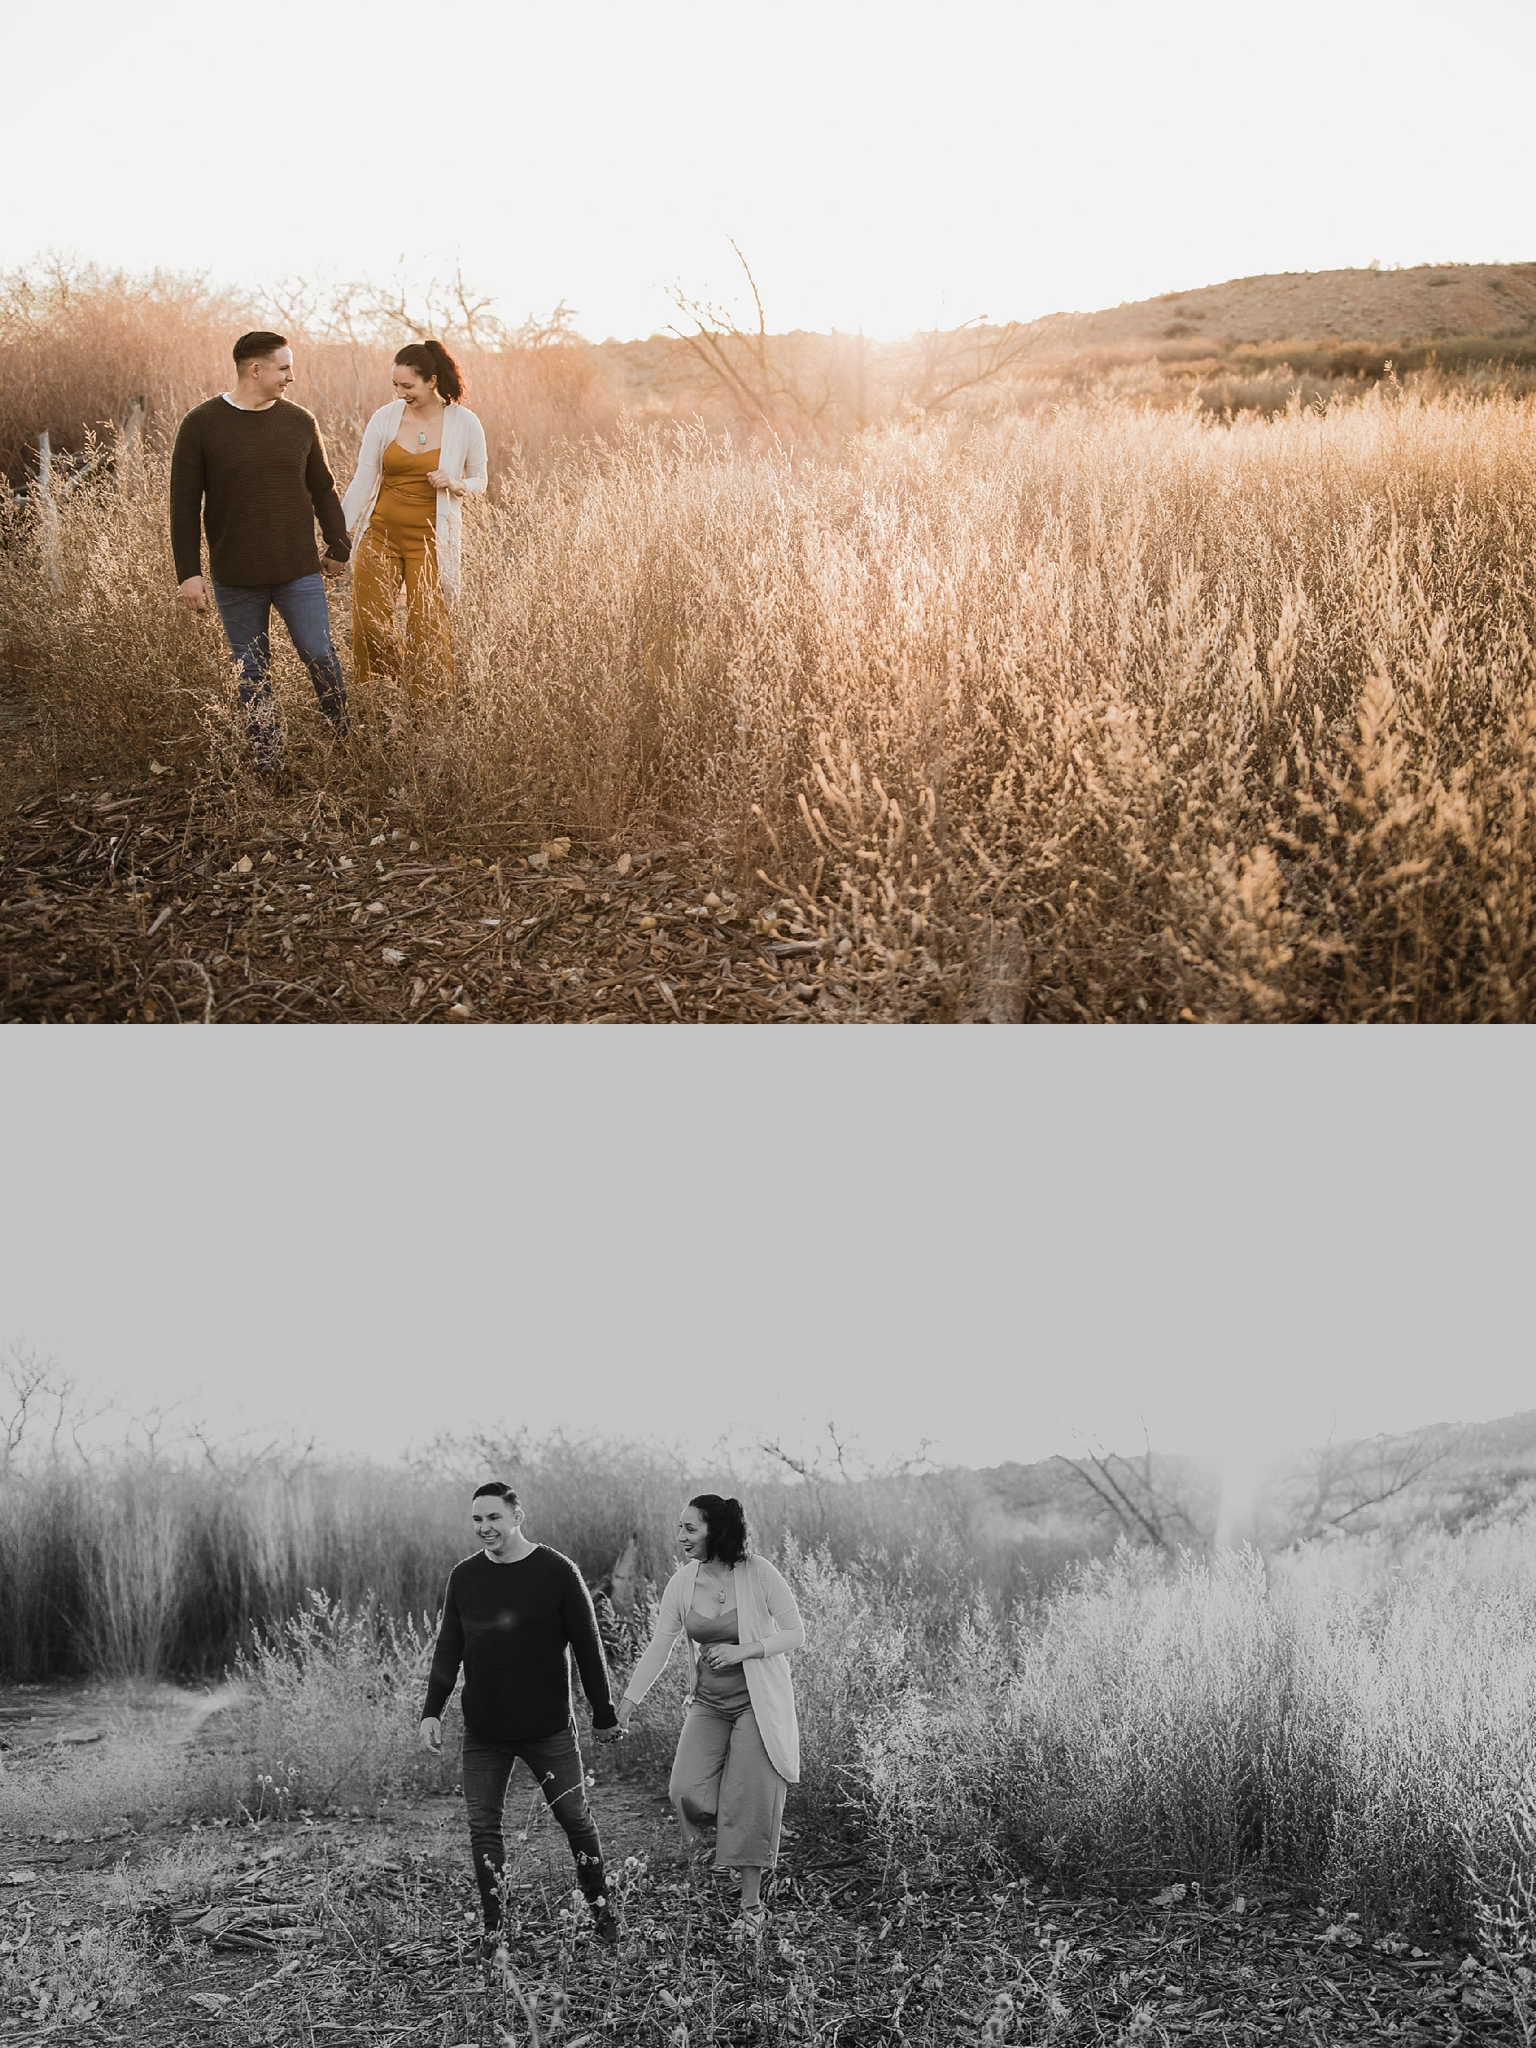 Alicia+lucia+photography+-+albuquerque+wedding+photographer+-+santa+fe+wedding+photography+-+new+mexico+wedding+photographer+-+new+mexico+wedding+-+engagement+-+new+mexico+engagemnt+-+outdoor+engagement_0009.jpg